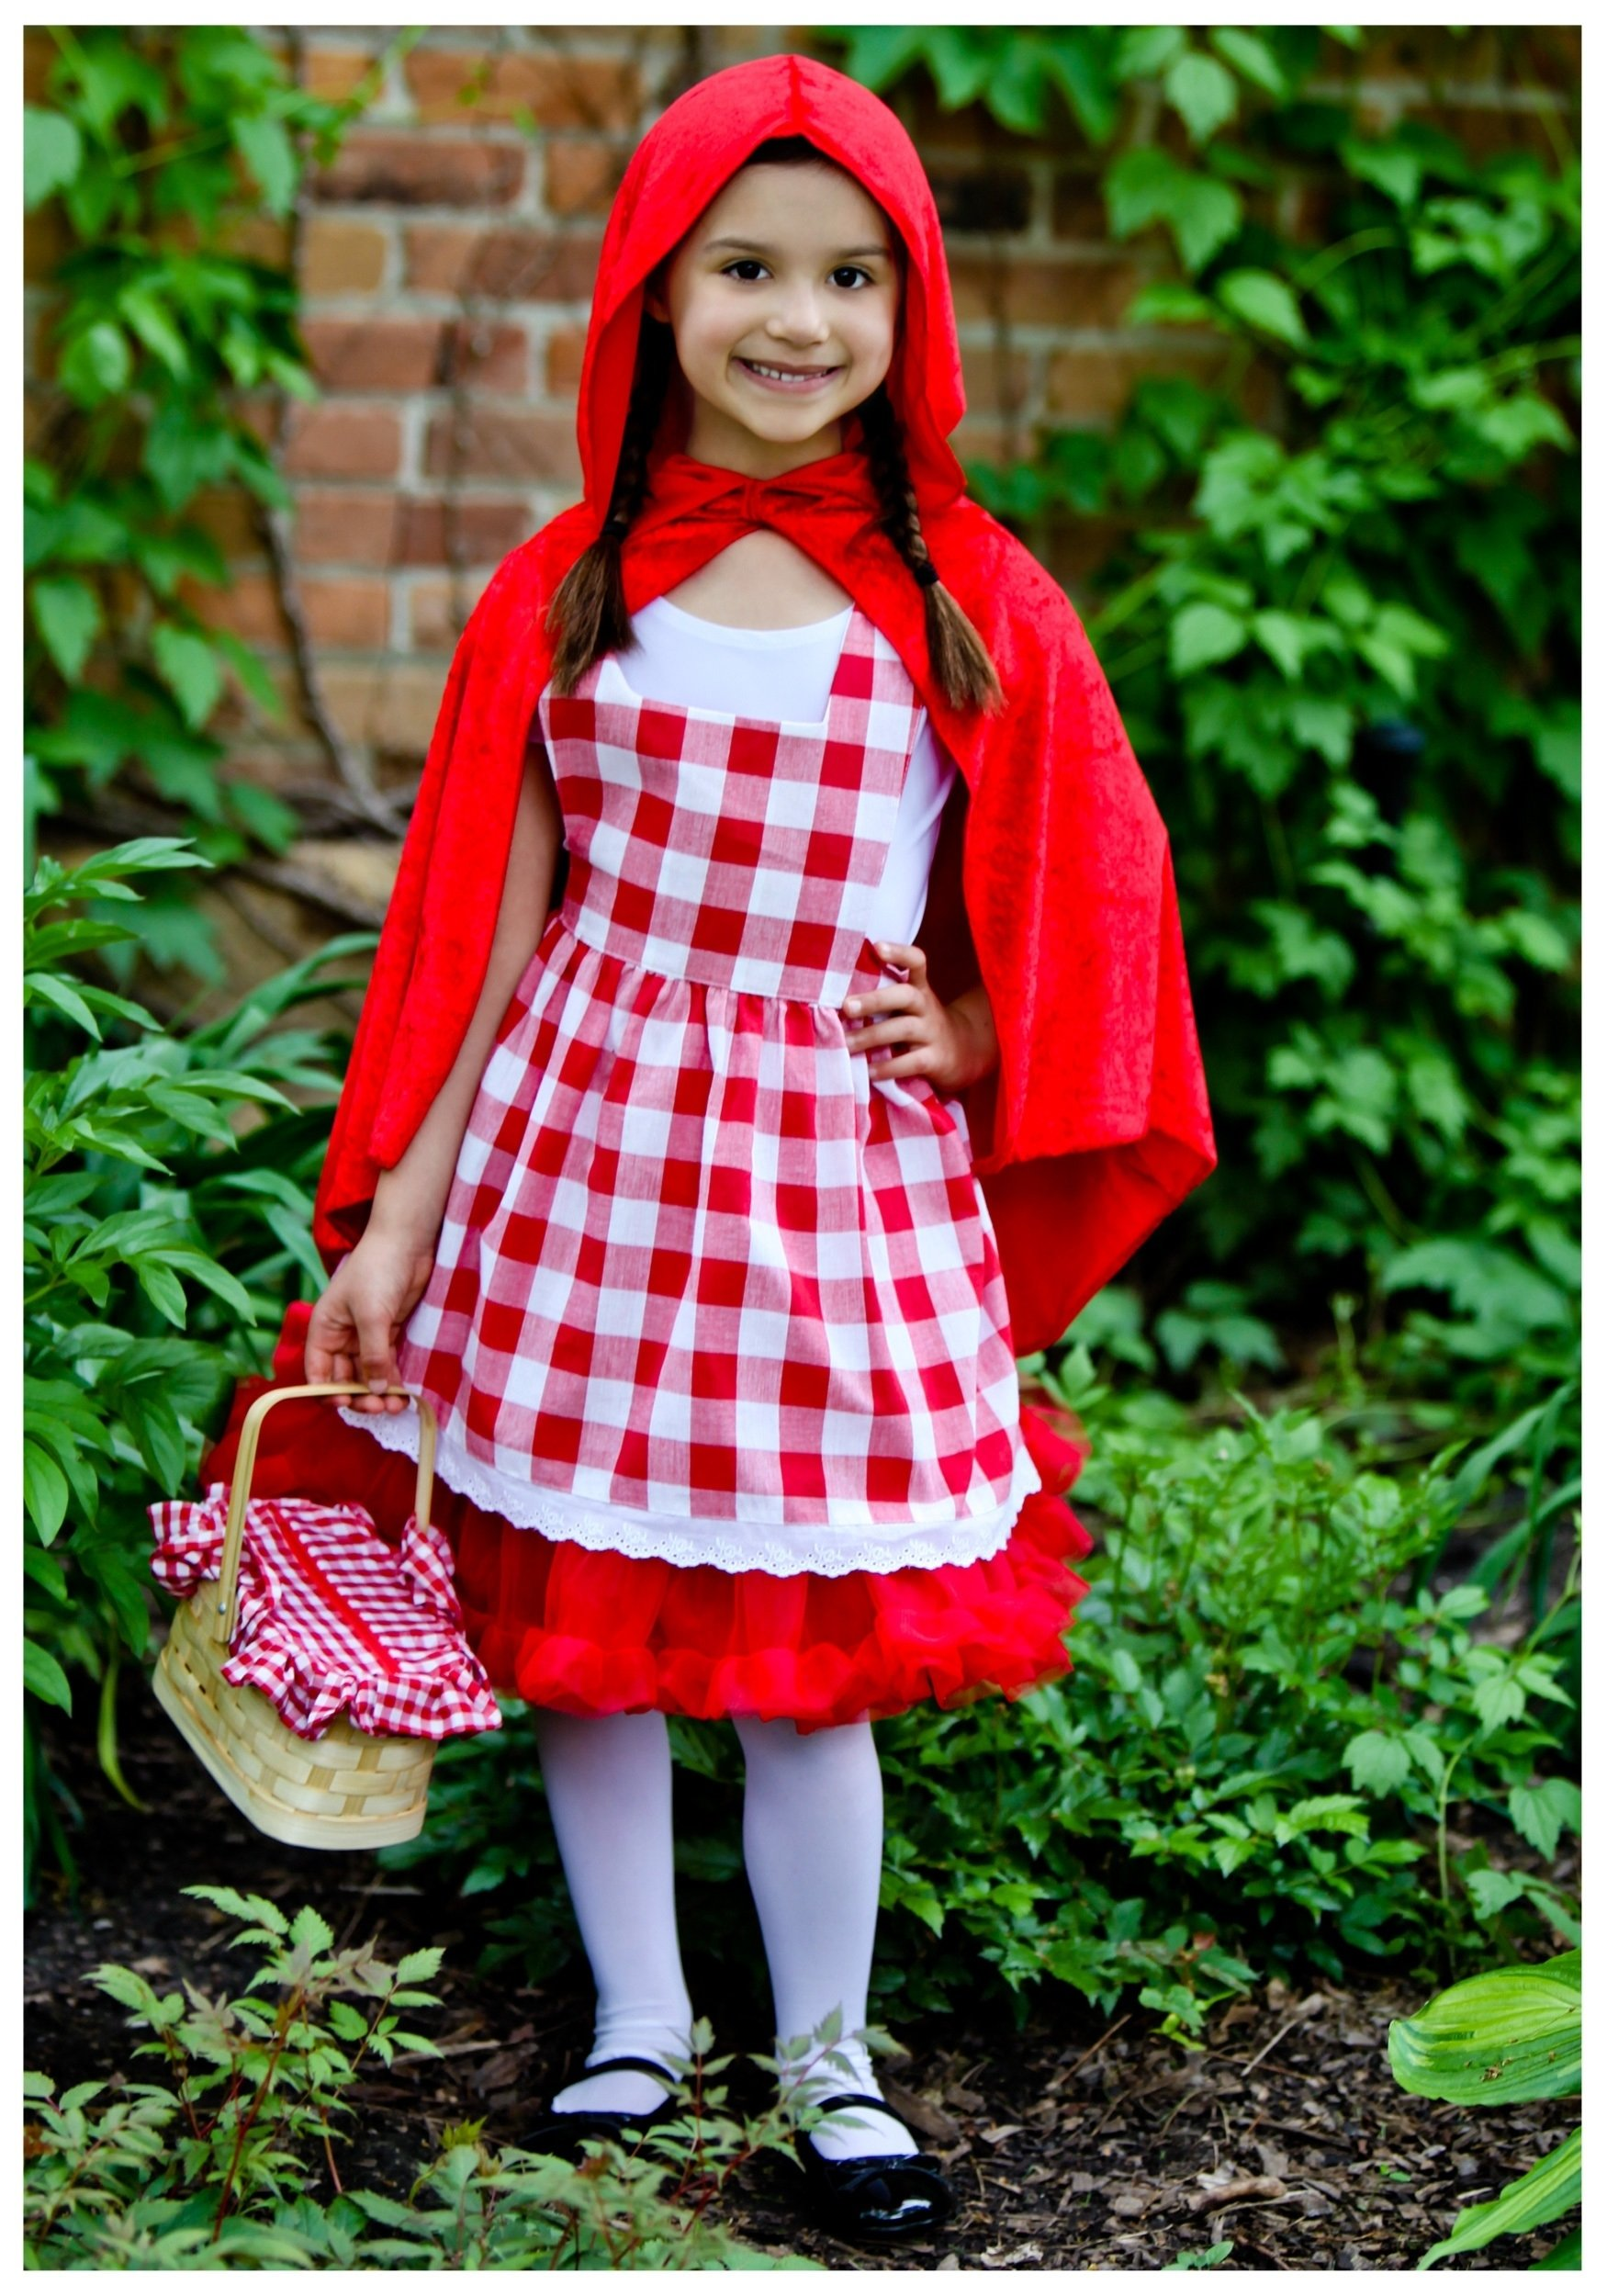 10 Pretty Little Red Riding Hood Costume Ideas girls checkered red riding hood tutu costume kids little red 2021